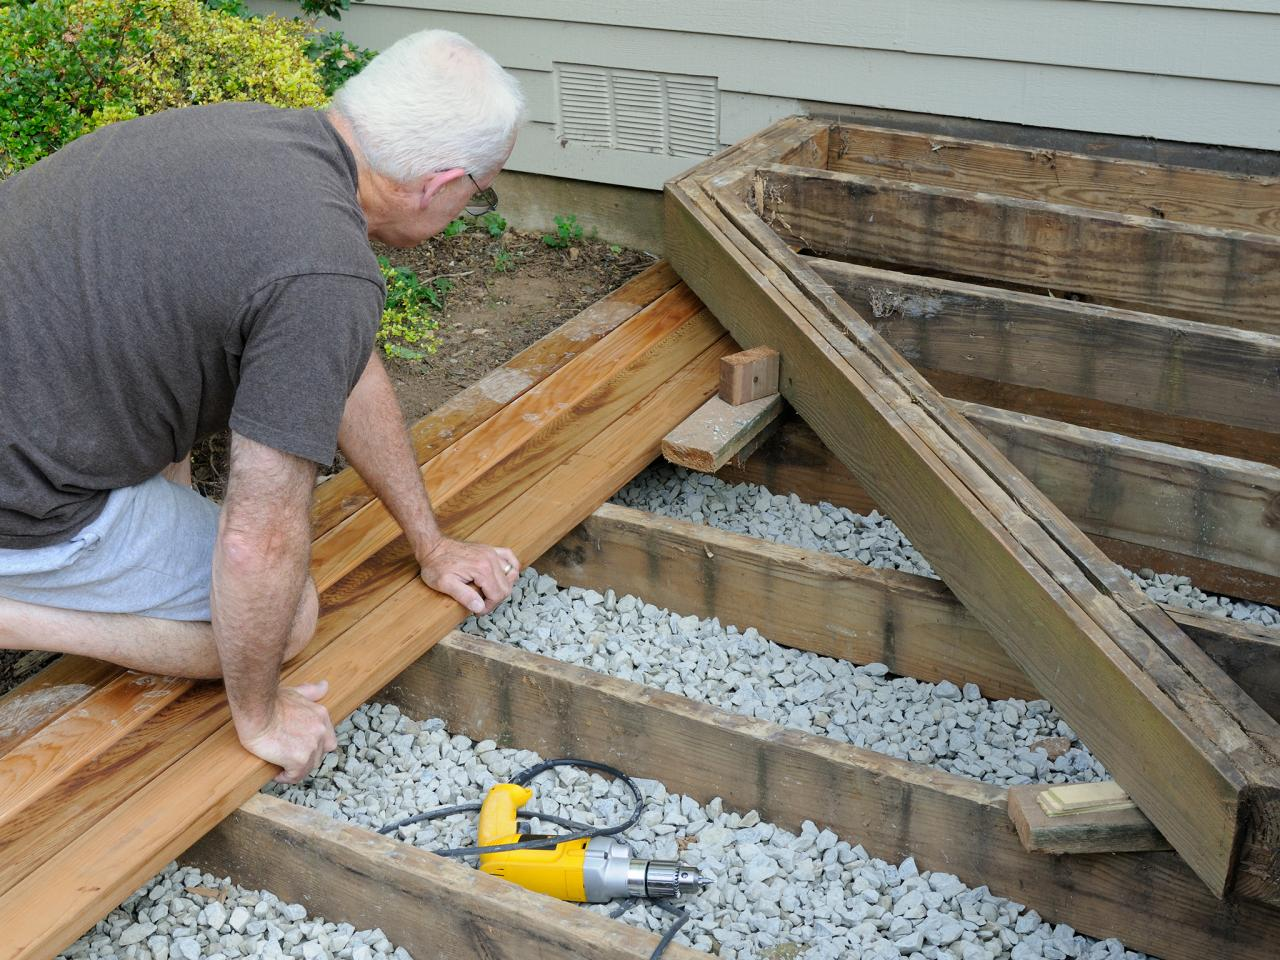 Make Your Home Spacious by Installing an Under Deck Drainage